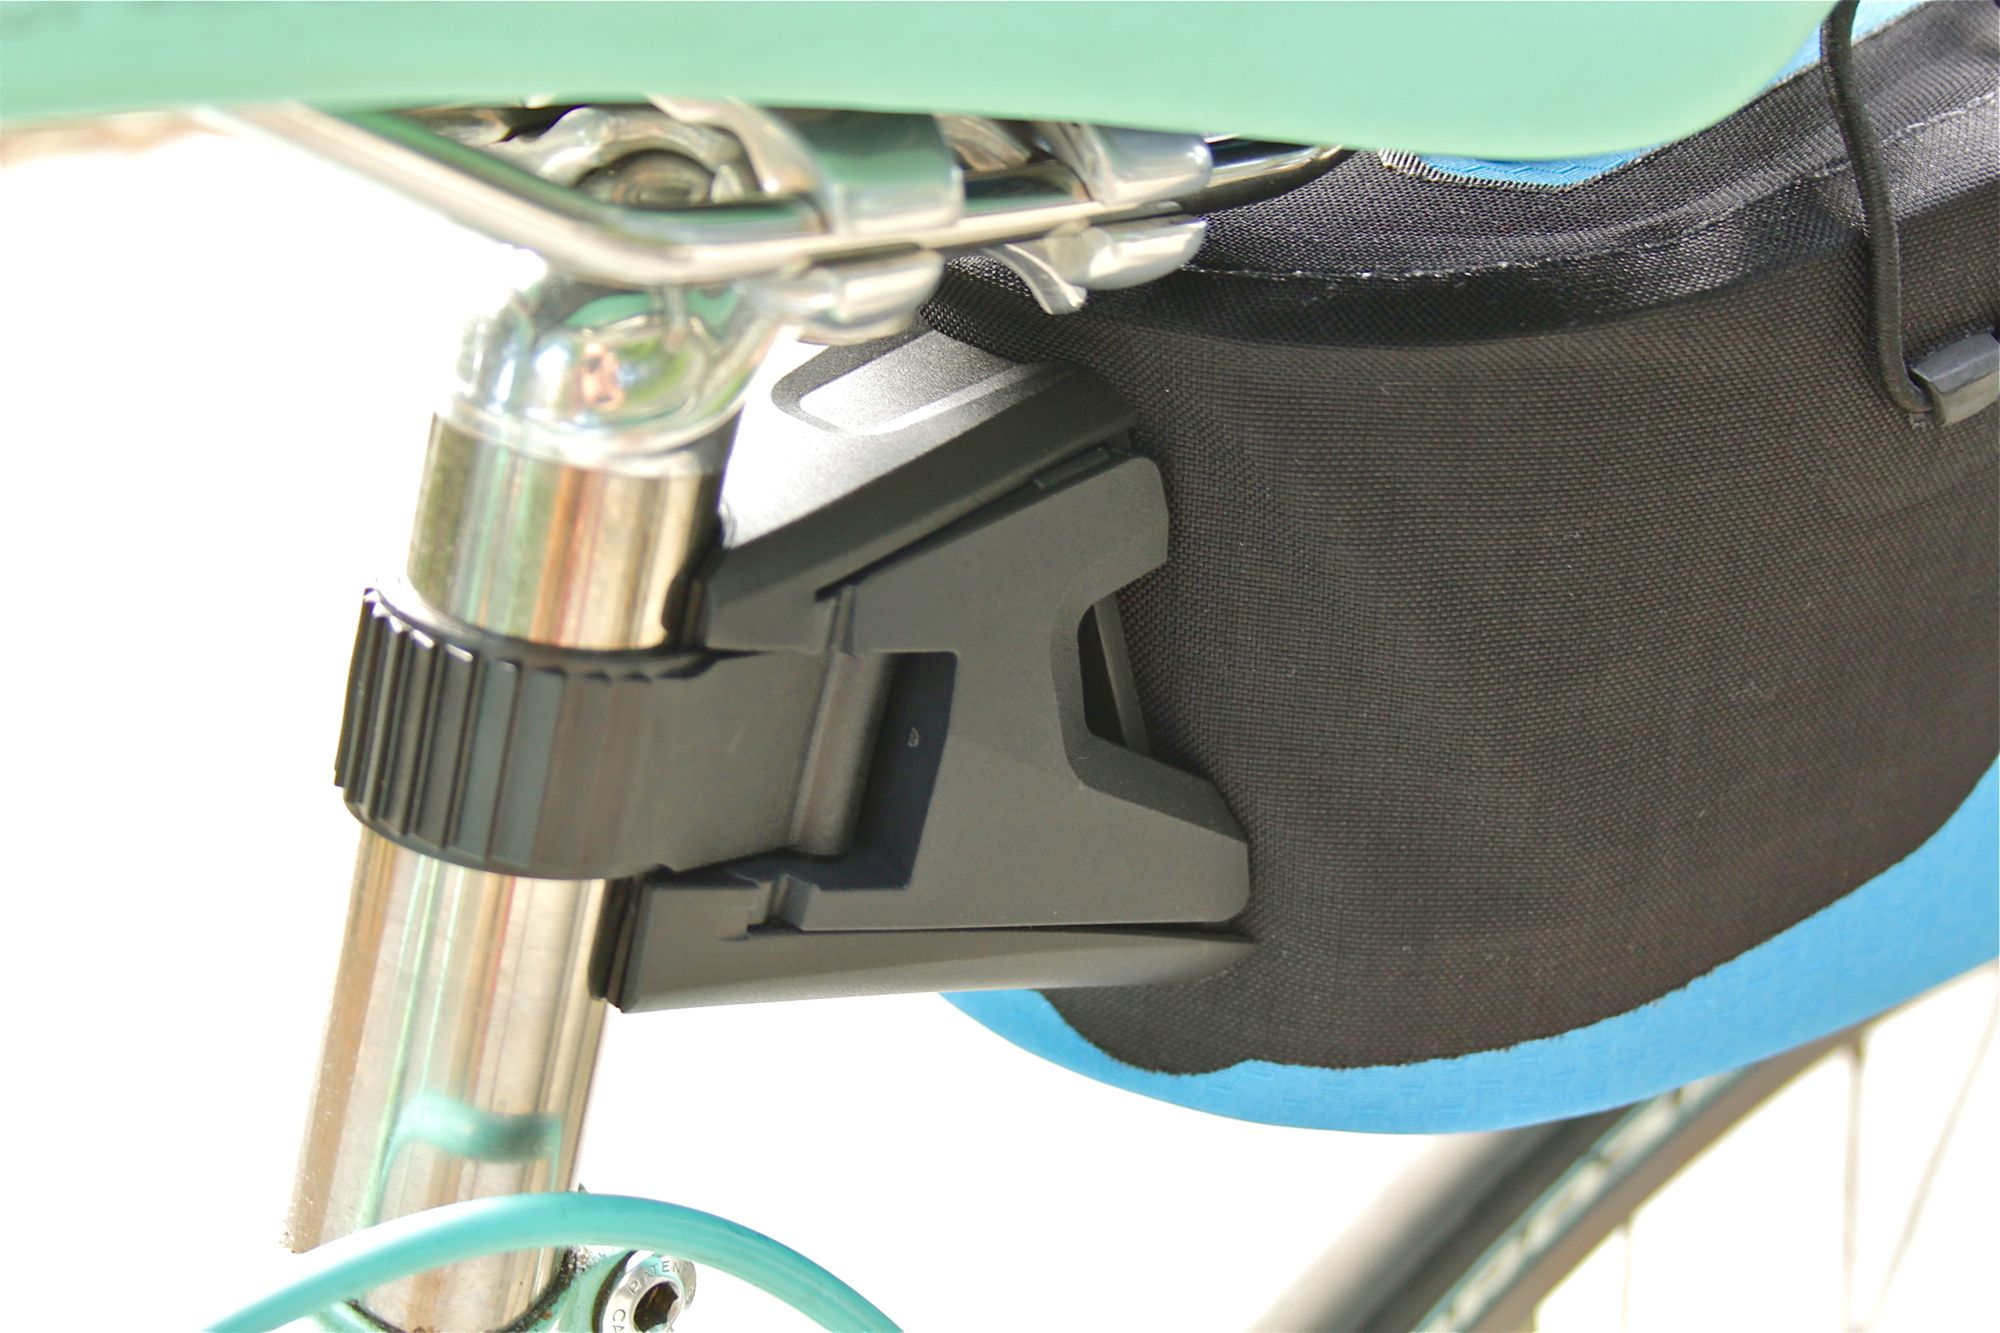 Ortlieb saddle clamp